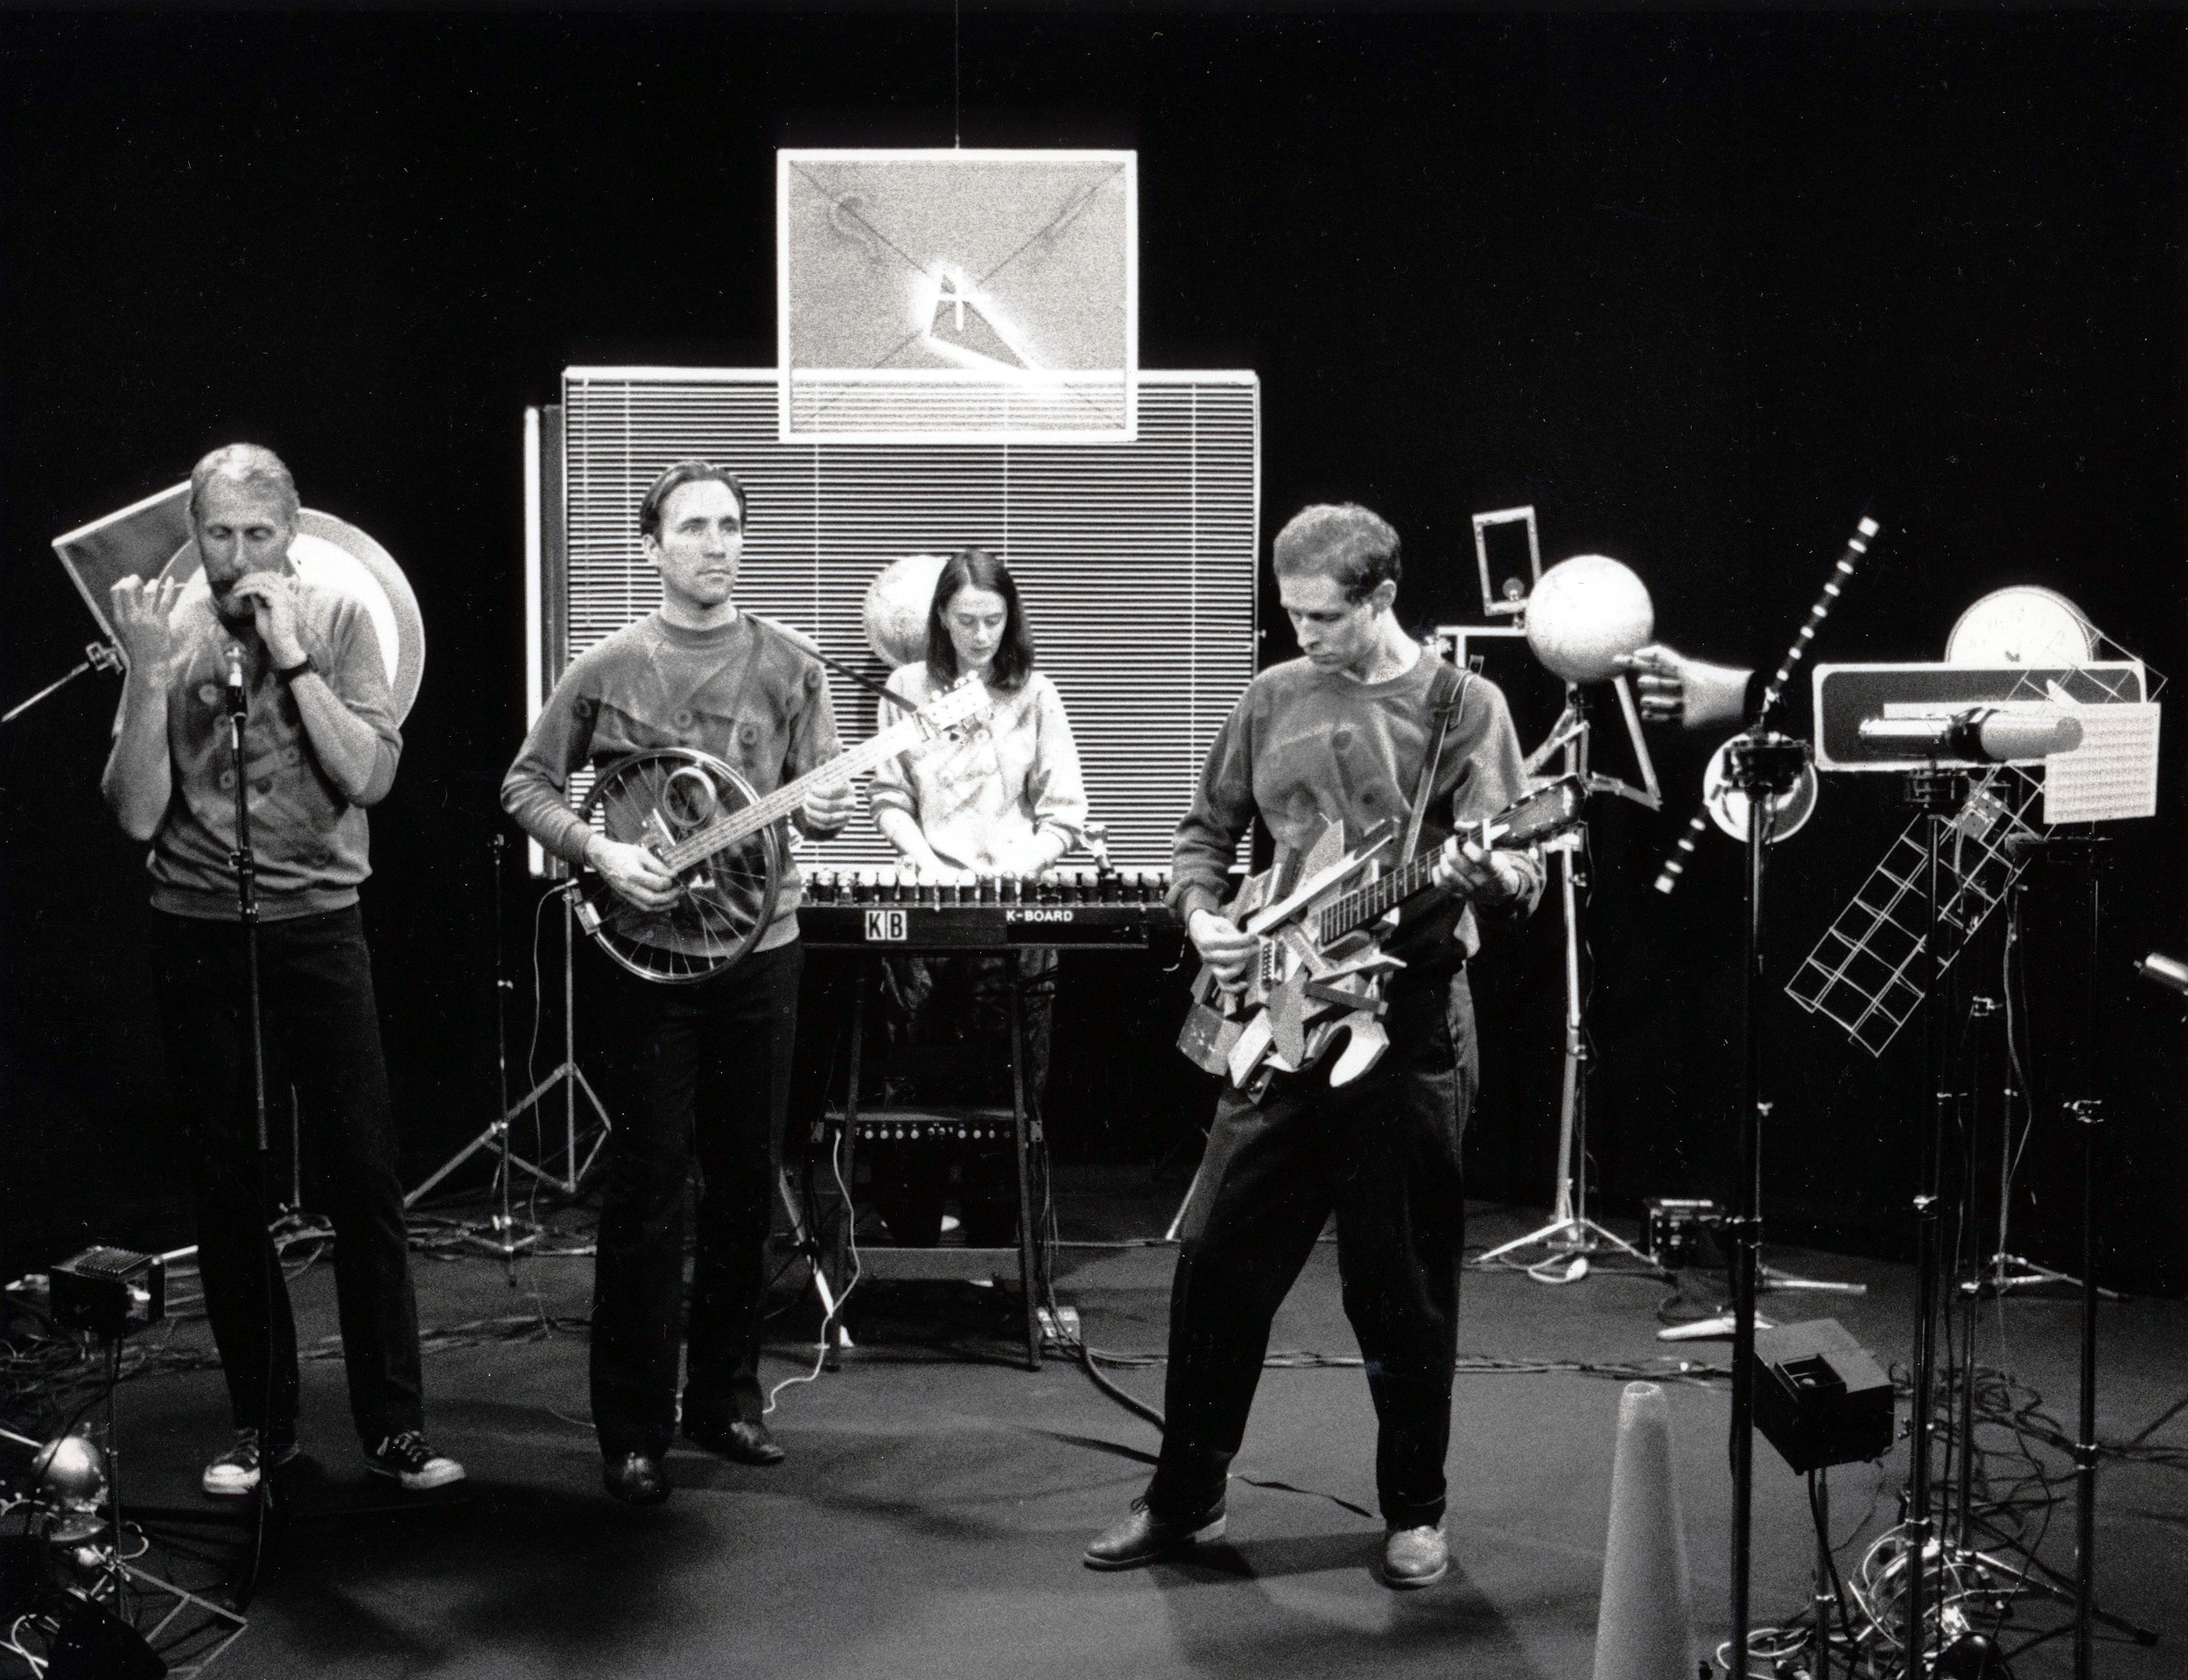 """Hybrid Antics"", Roger's Cable Video, 1983  w. Jerilyn Tabor, Stan Wood, and Steve Koski"